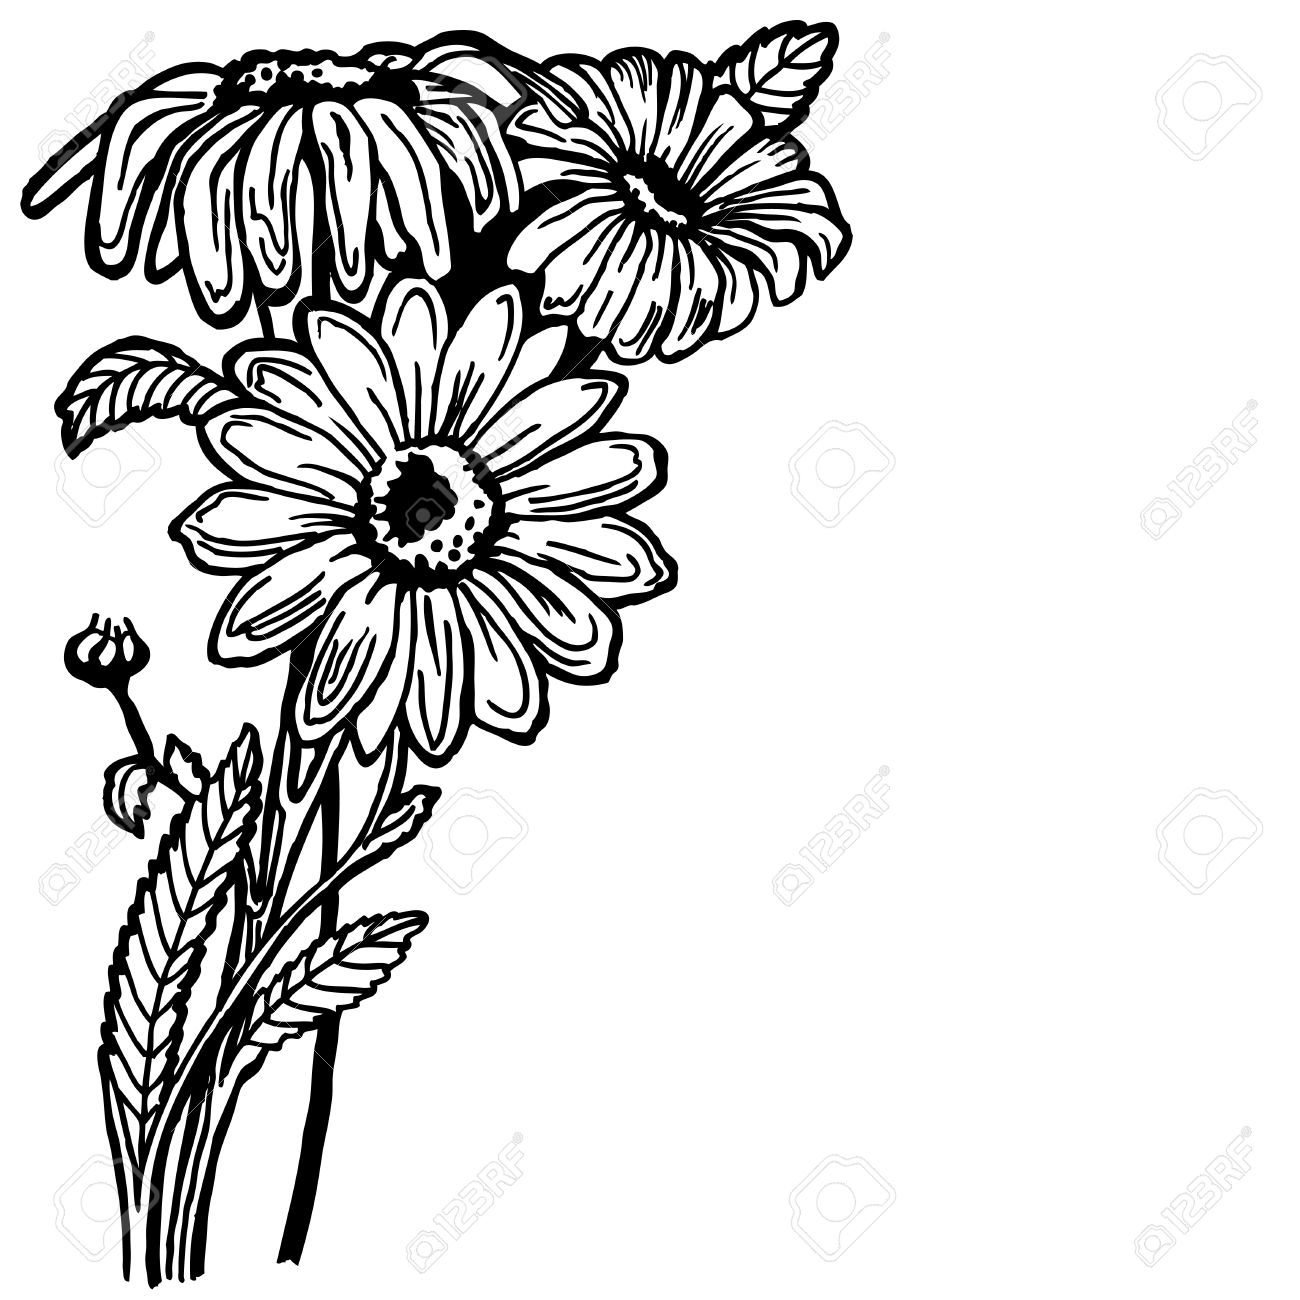 1300x1300 A Buch Of A Daisy With Flowers And Leaves. Drawing. Vintage